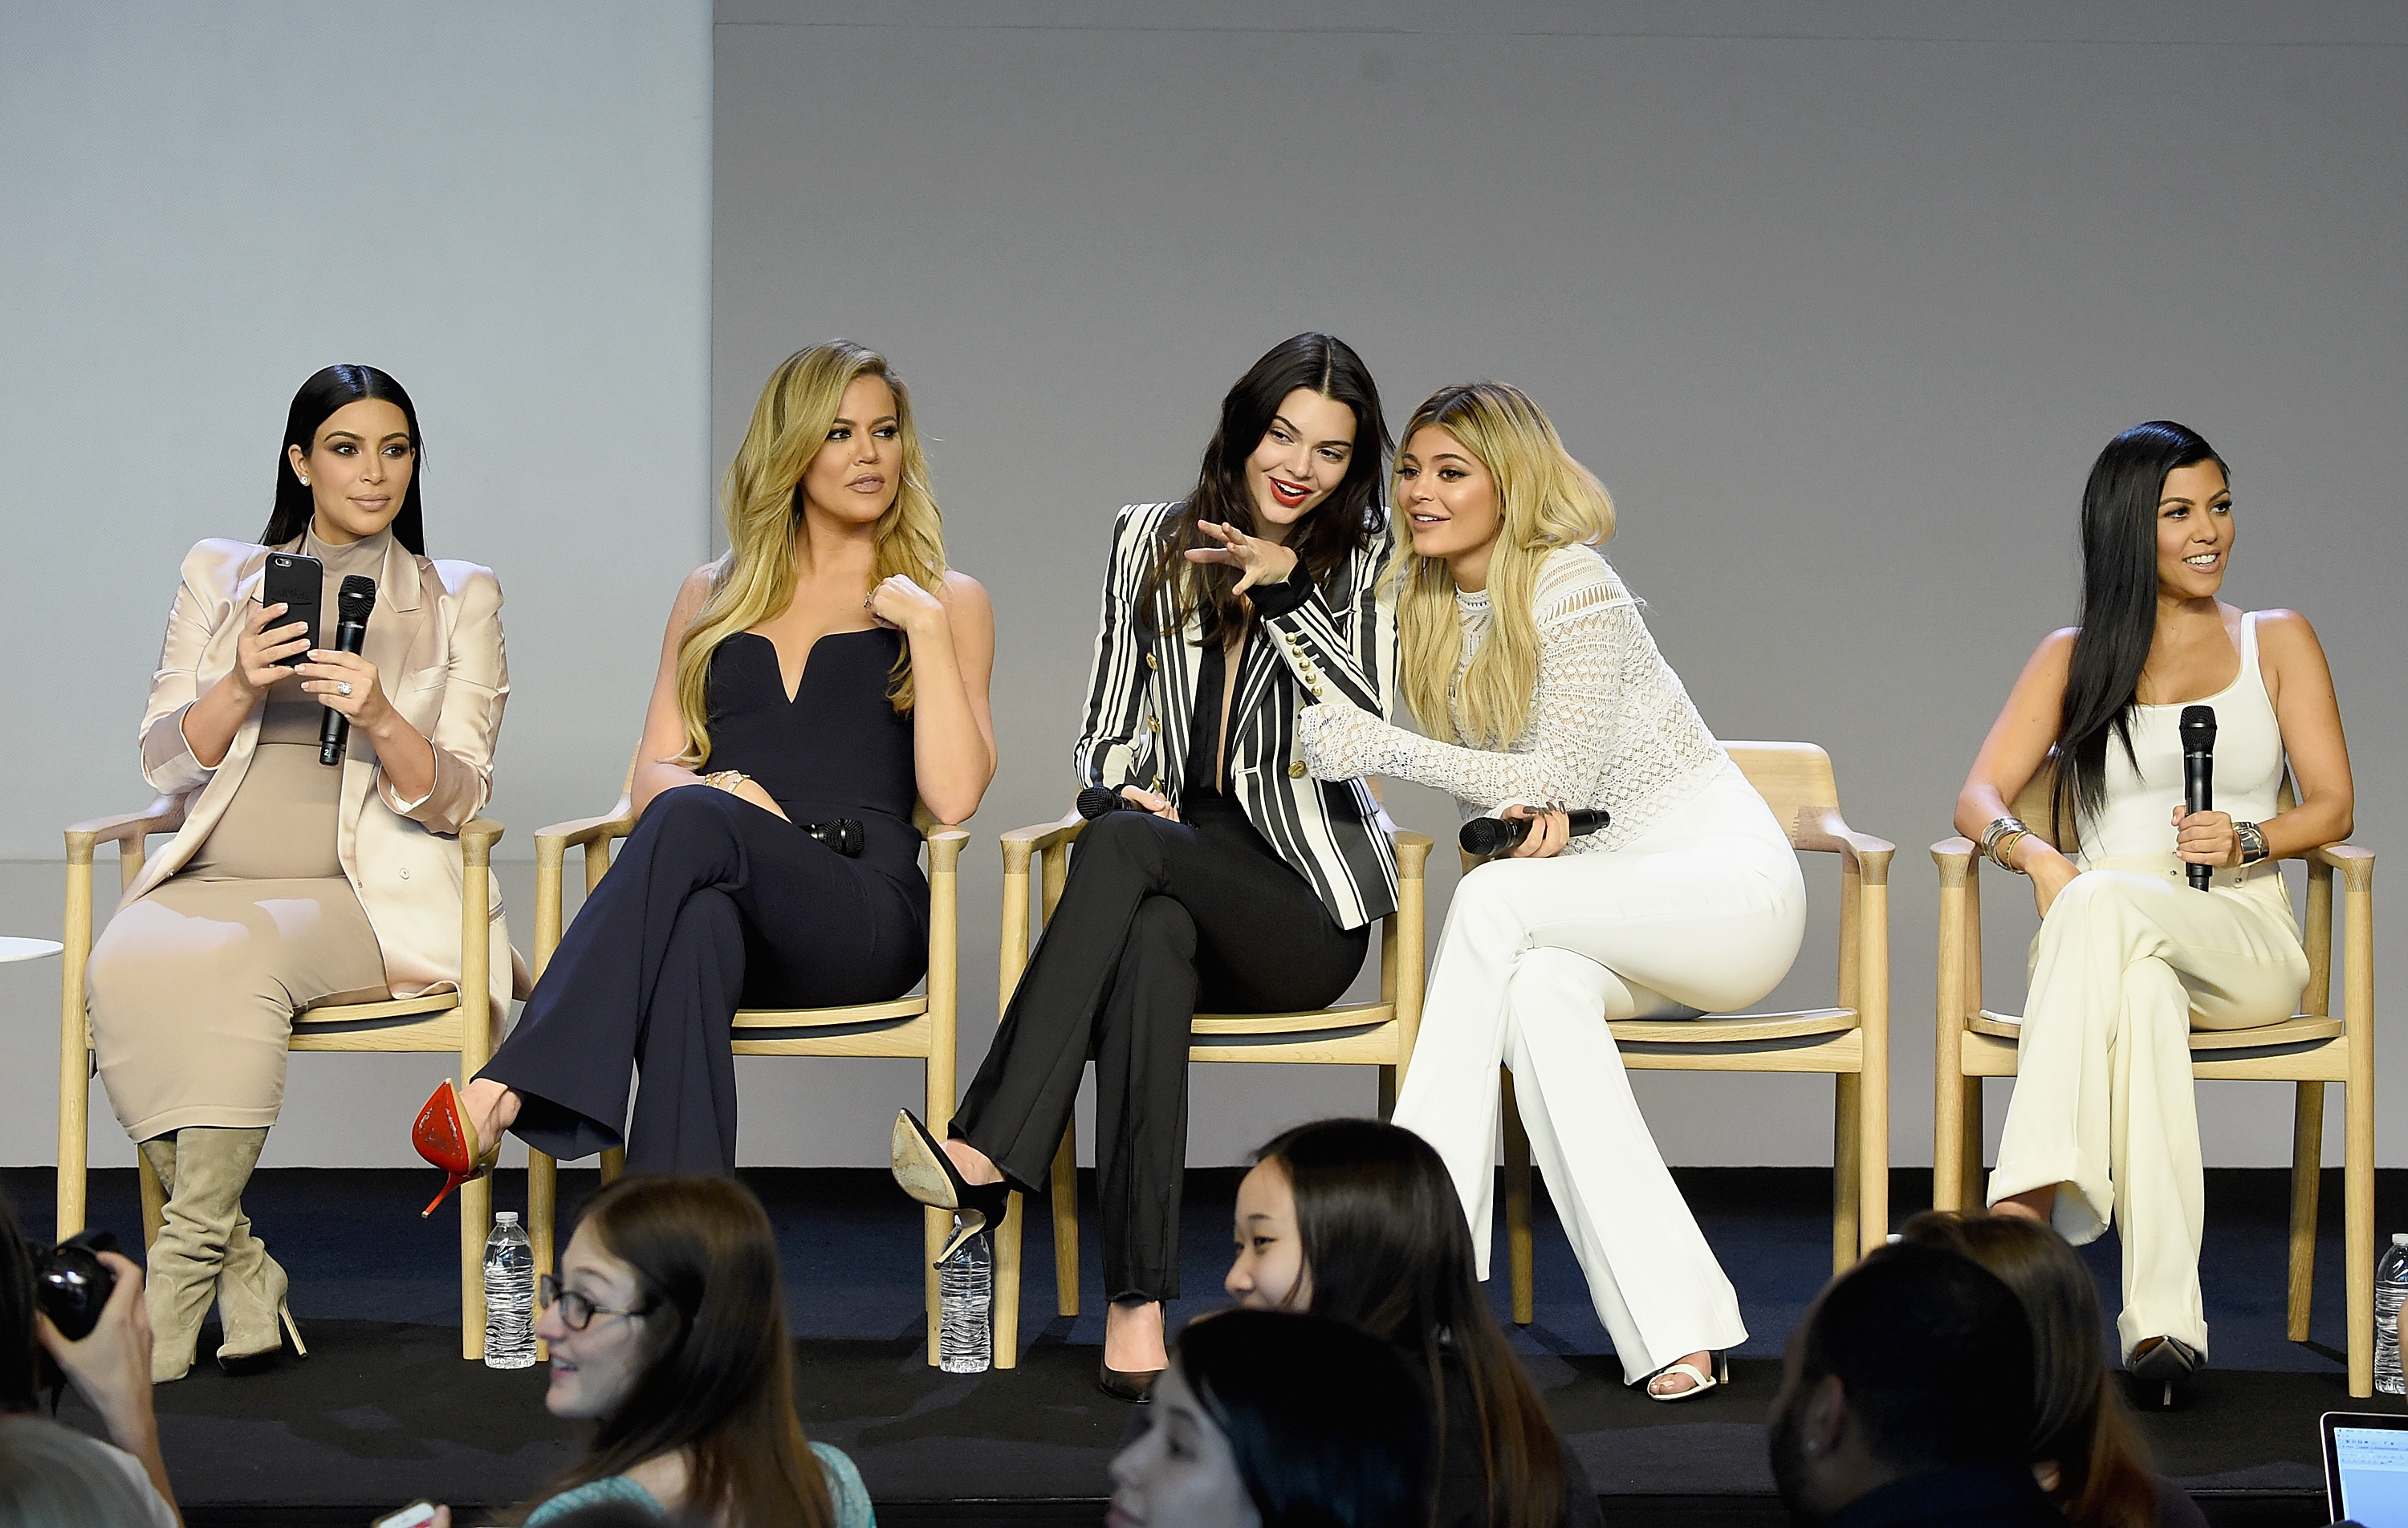 Apple Store Soho Presents Meet The Developers: Kim Kardashian, Kourtney Kardashian, Khloe Kardashian, Kendall Jenner & Kylie Jenner